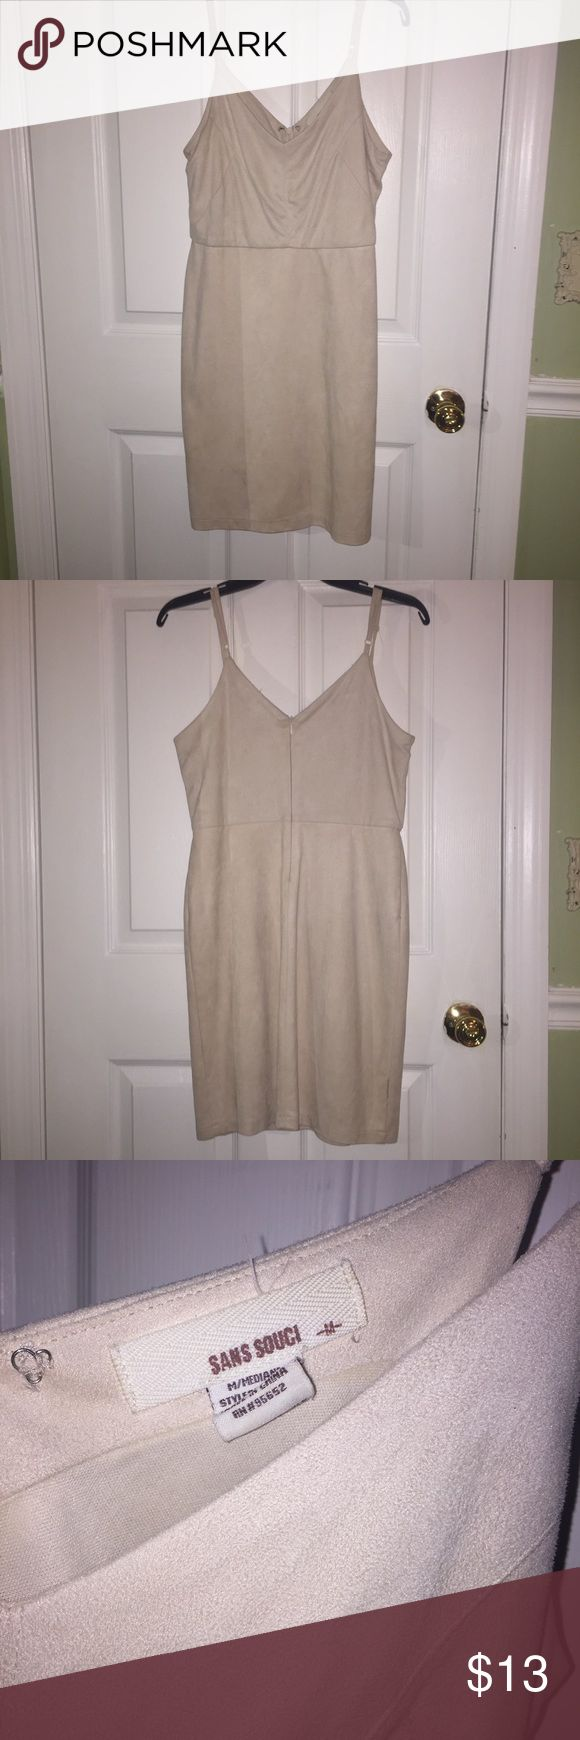 Nude Suede Bodycon Dress nude/tan colored suede dress, size M, great condition with no stains or imperfections, super comfortable and very classy—bought from a boutique near me J. Crew Dresses Mini